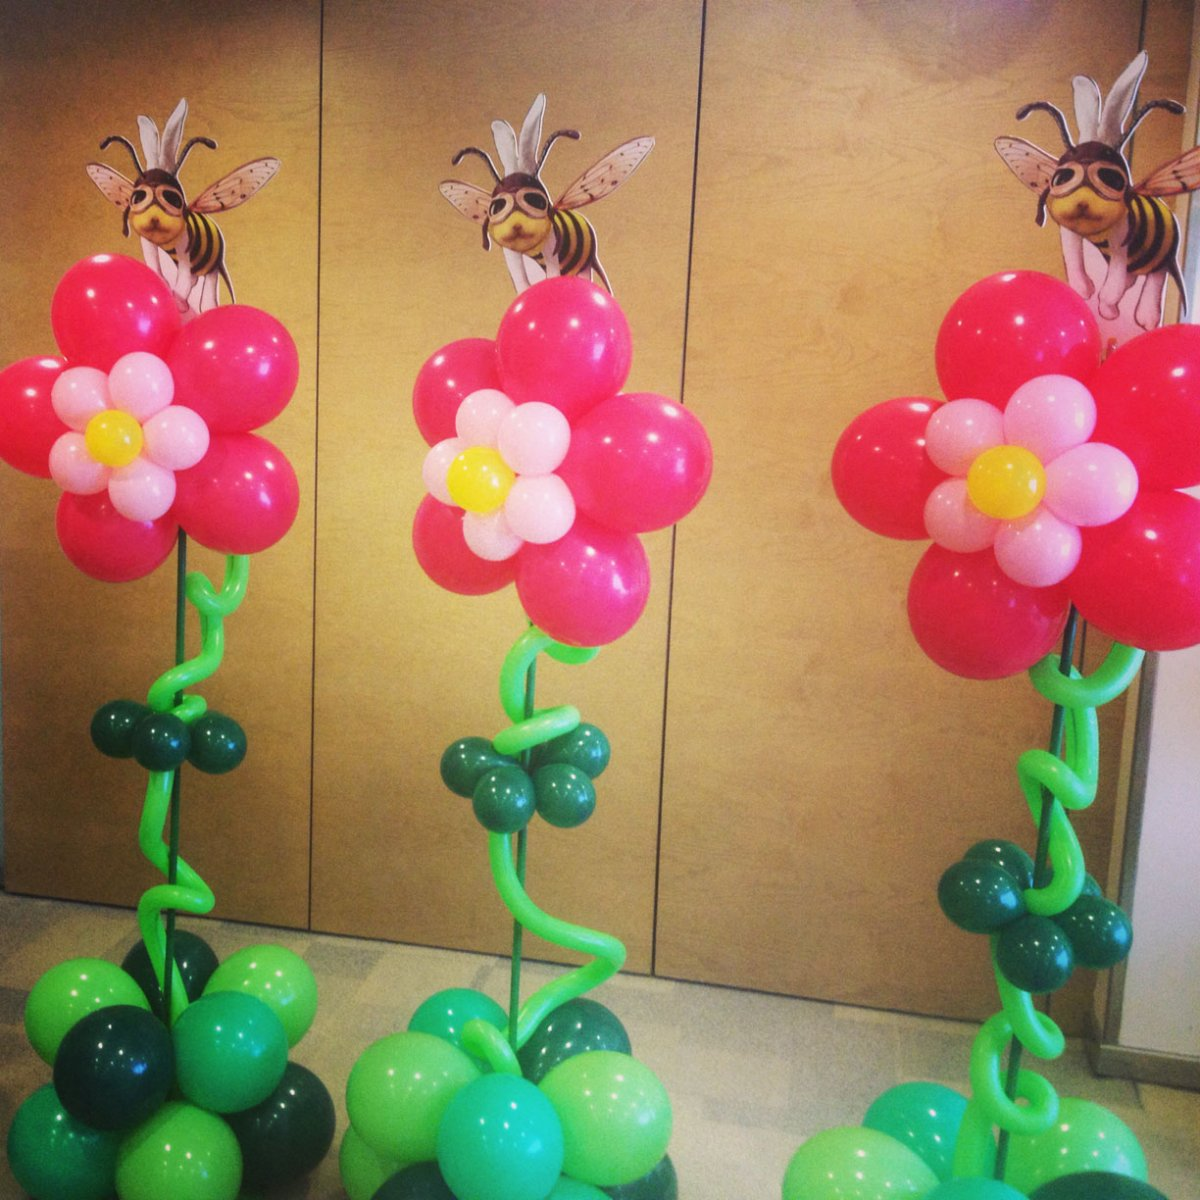 Sorpresas con globos para regalar regals rodons giram n for Decoracion simple con globos